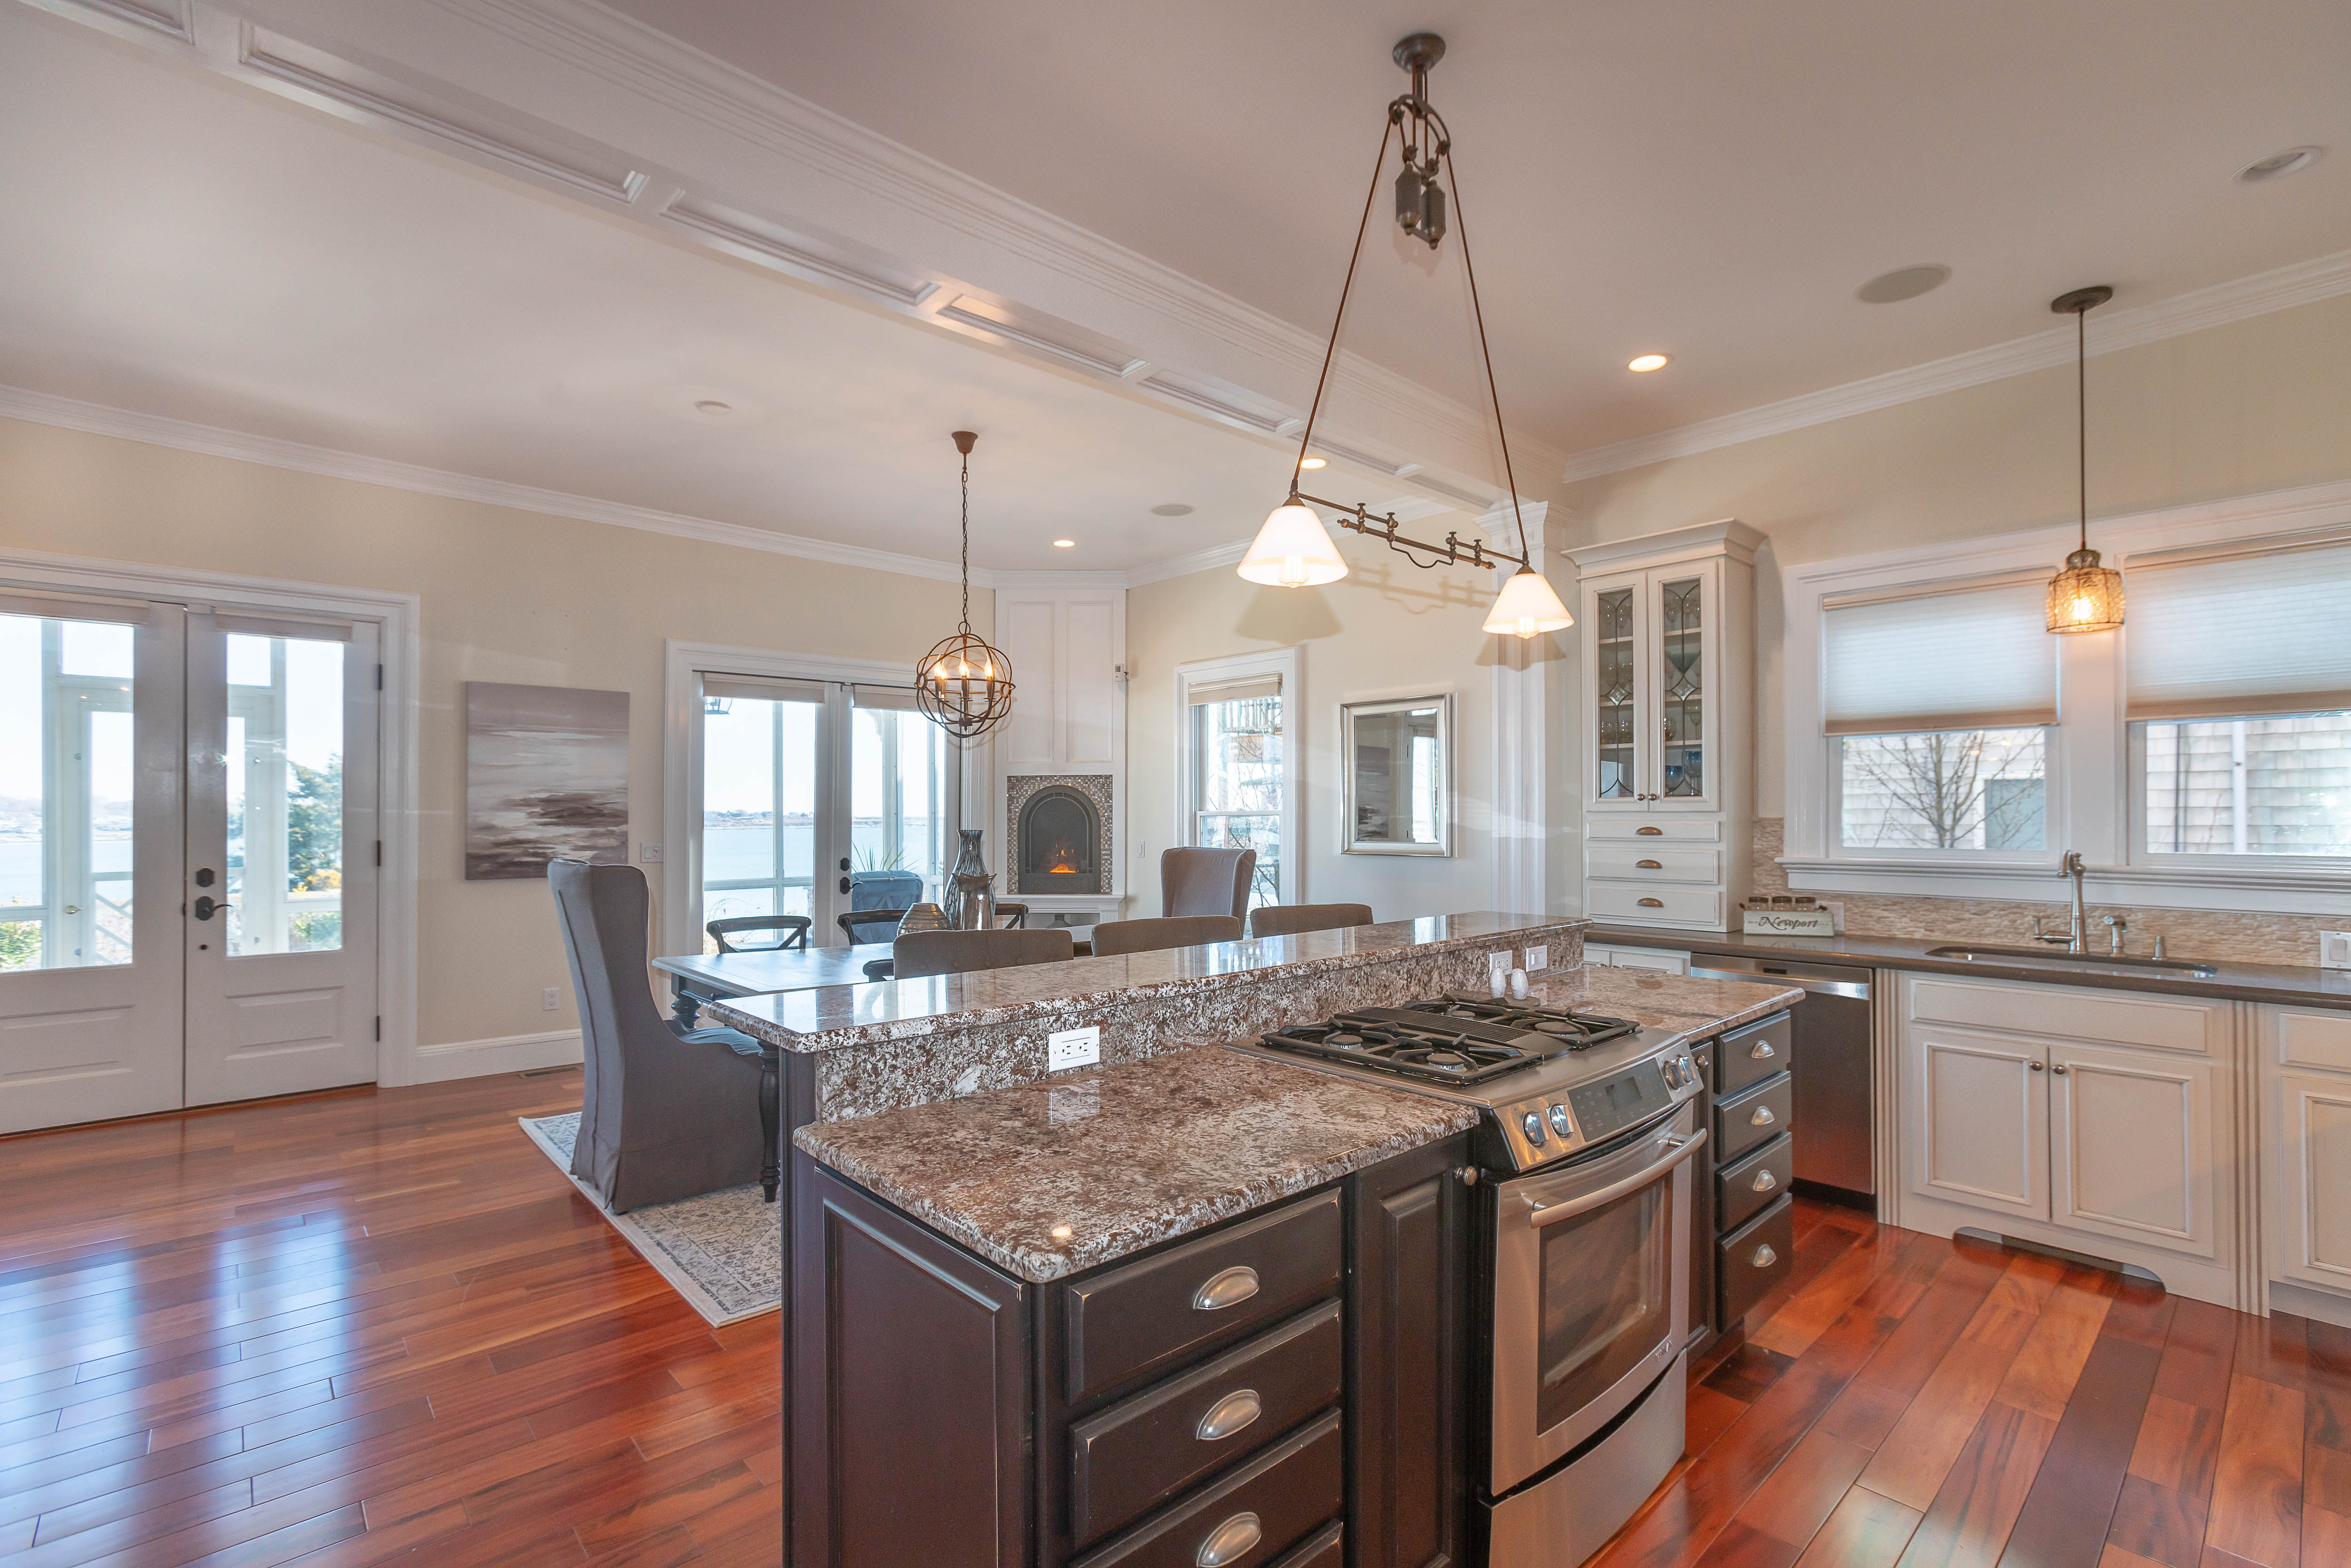 THE HOME has a modern kitchen and is an open concept design. / COURTESY MOTT & CHACE SOTHEBY'S INTERNATIONAL REALTY